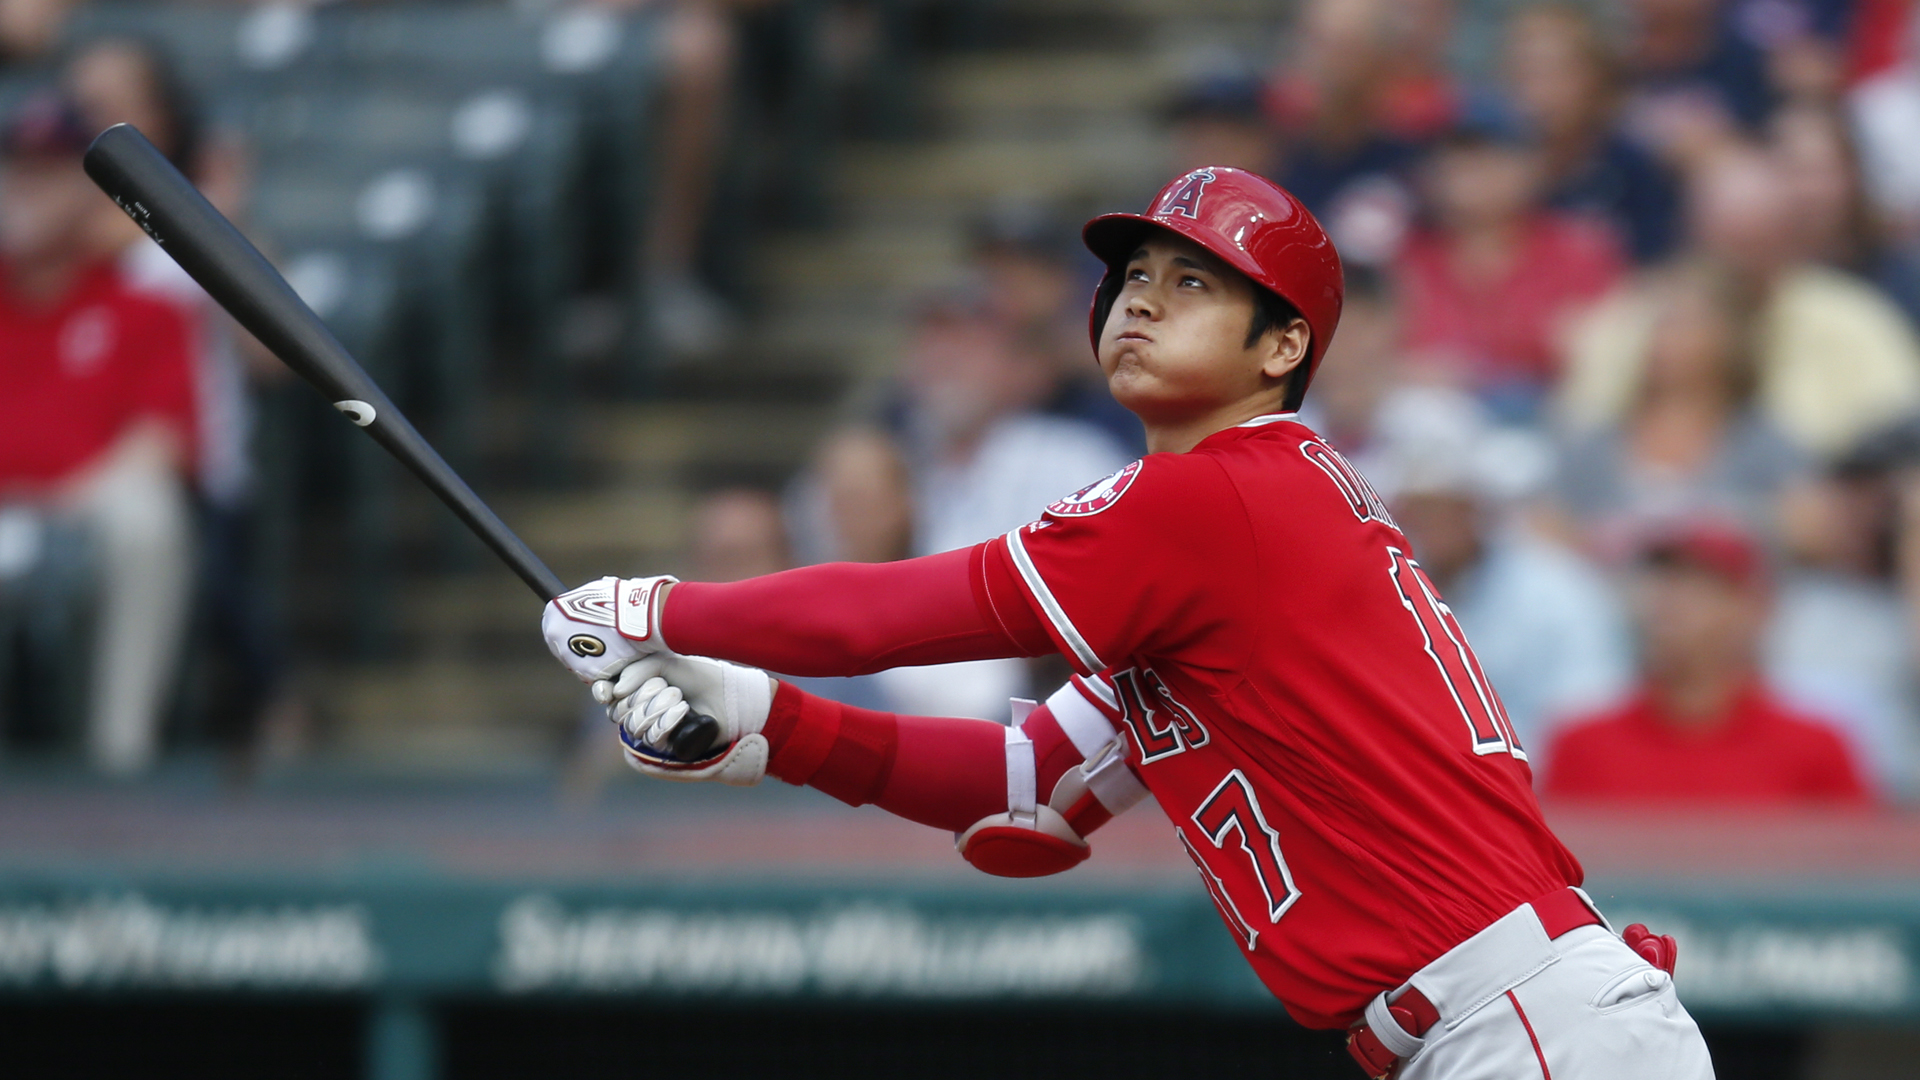 Ohtani will not pitch in 2019 after undergoing Tommy John surgery in October, but he could be back to hit a couple of months in.